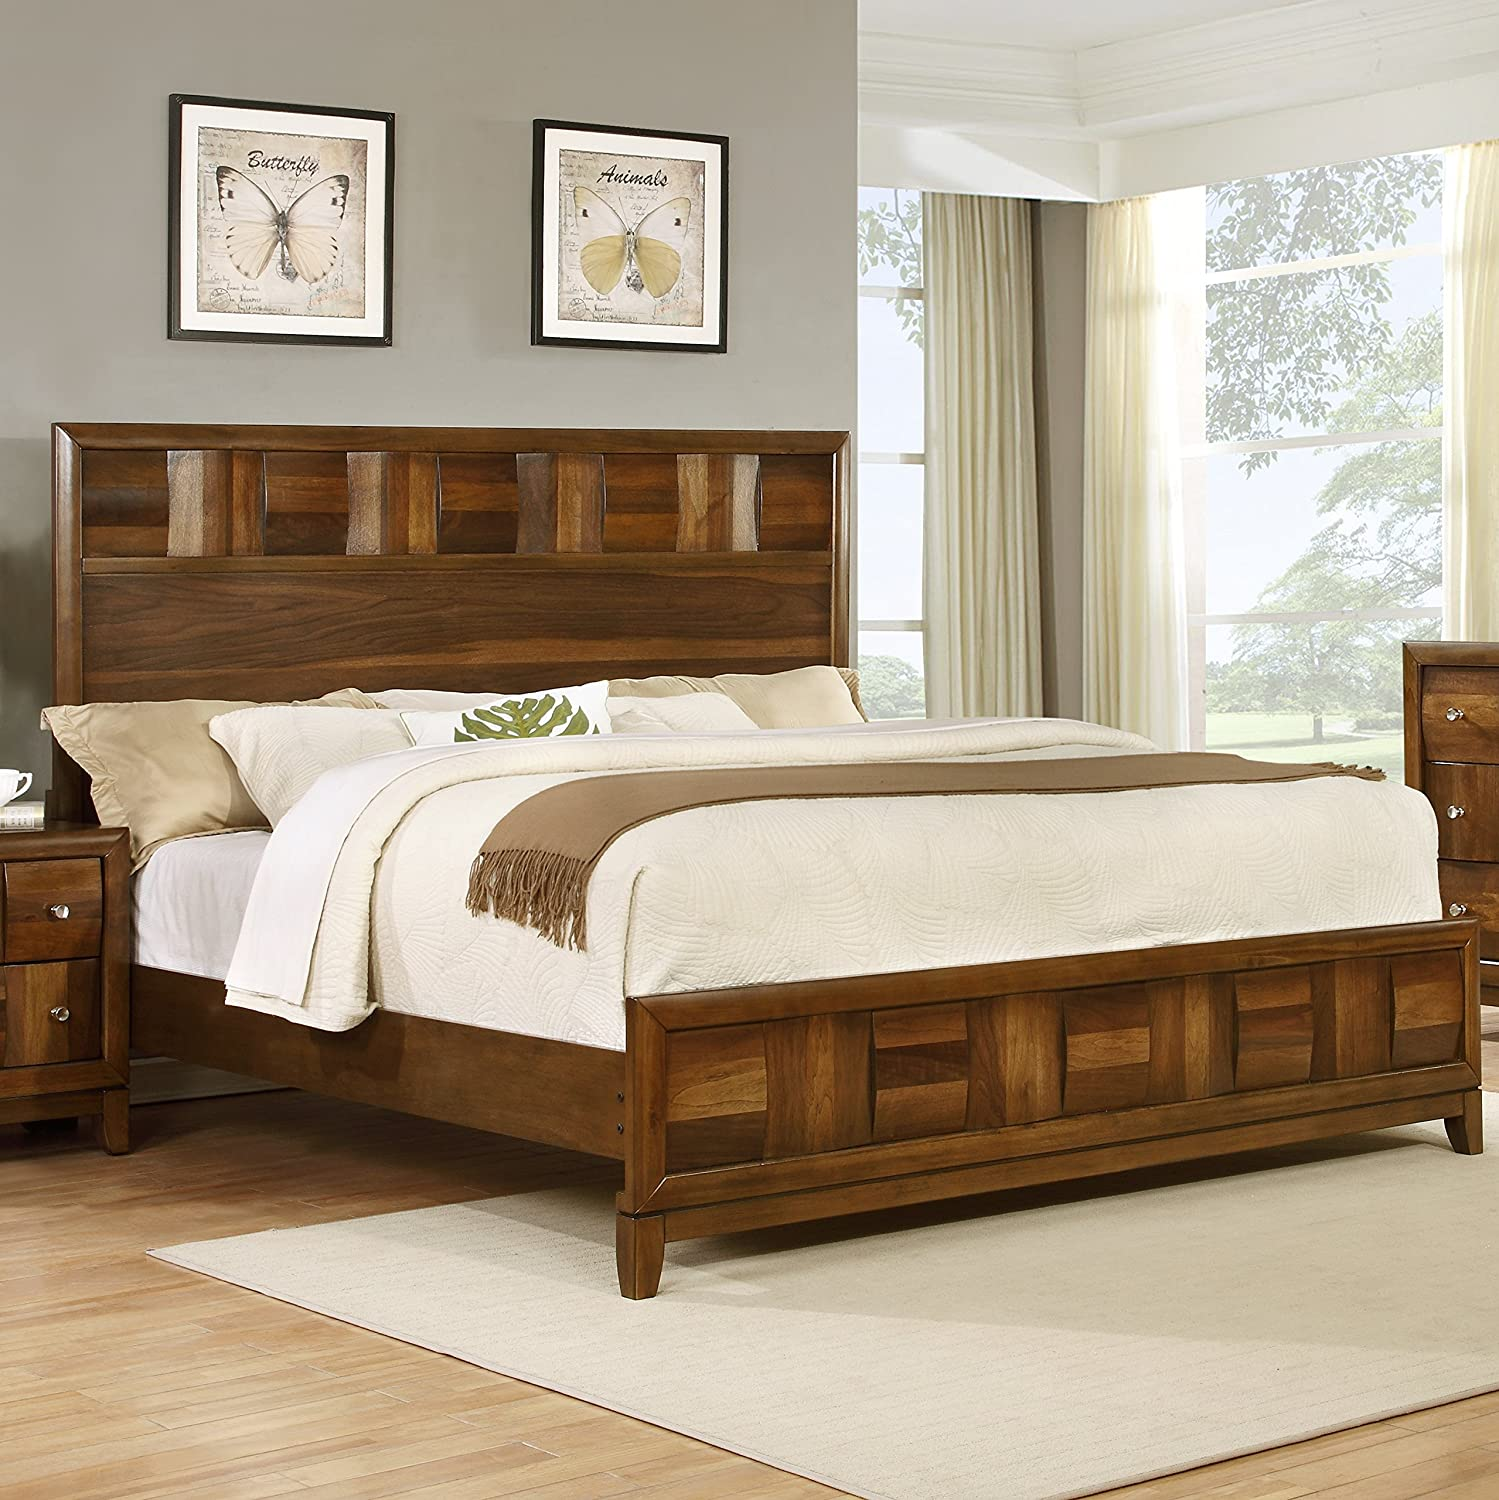 Beautiful Bedroom Set Furniture Decorating Ideas